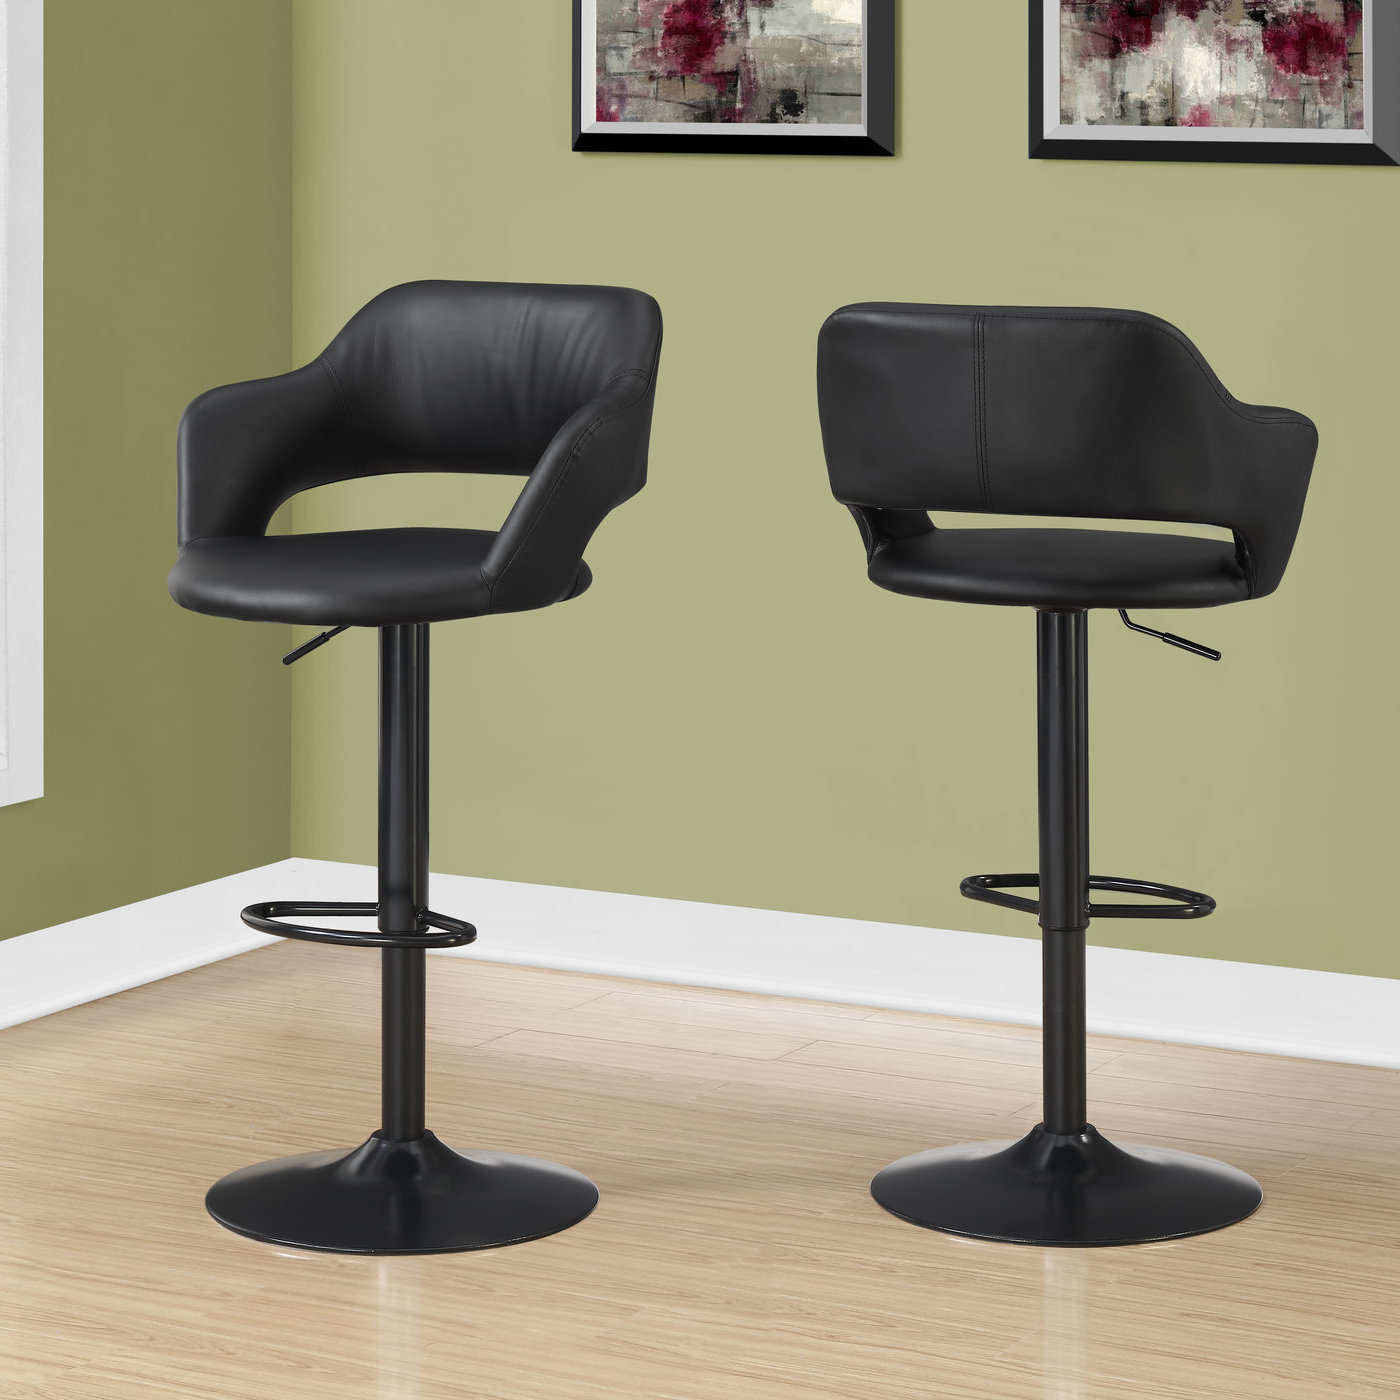 Orren Ellis Iva Adjustable Height Swivel Bar Stool & Reviews Intended For Preferred Rarick 5 Piece Solid Wood Dining Sets (Set Of 5) (View 8 of 20)